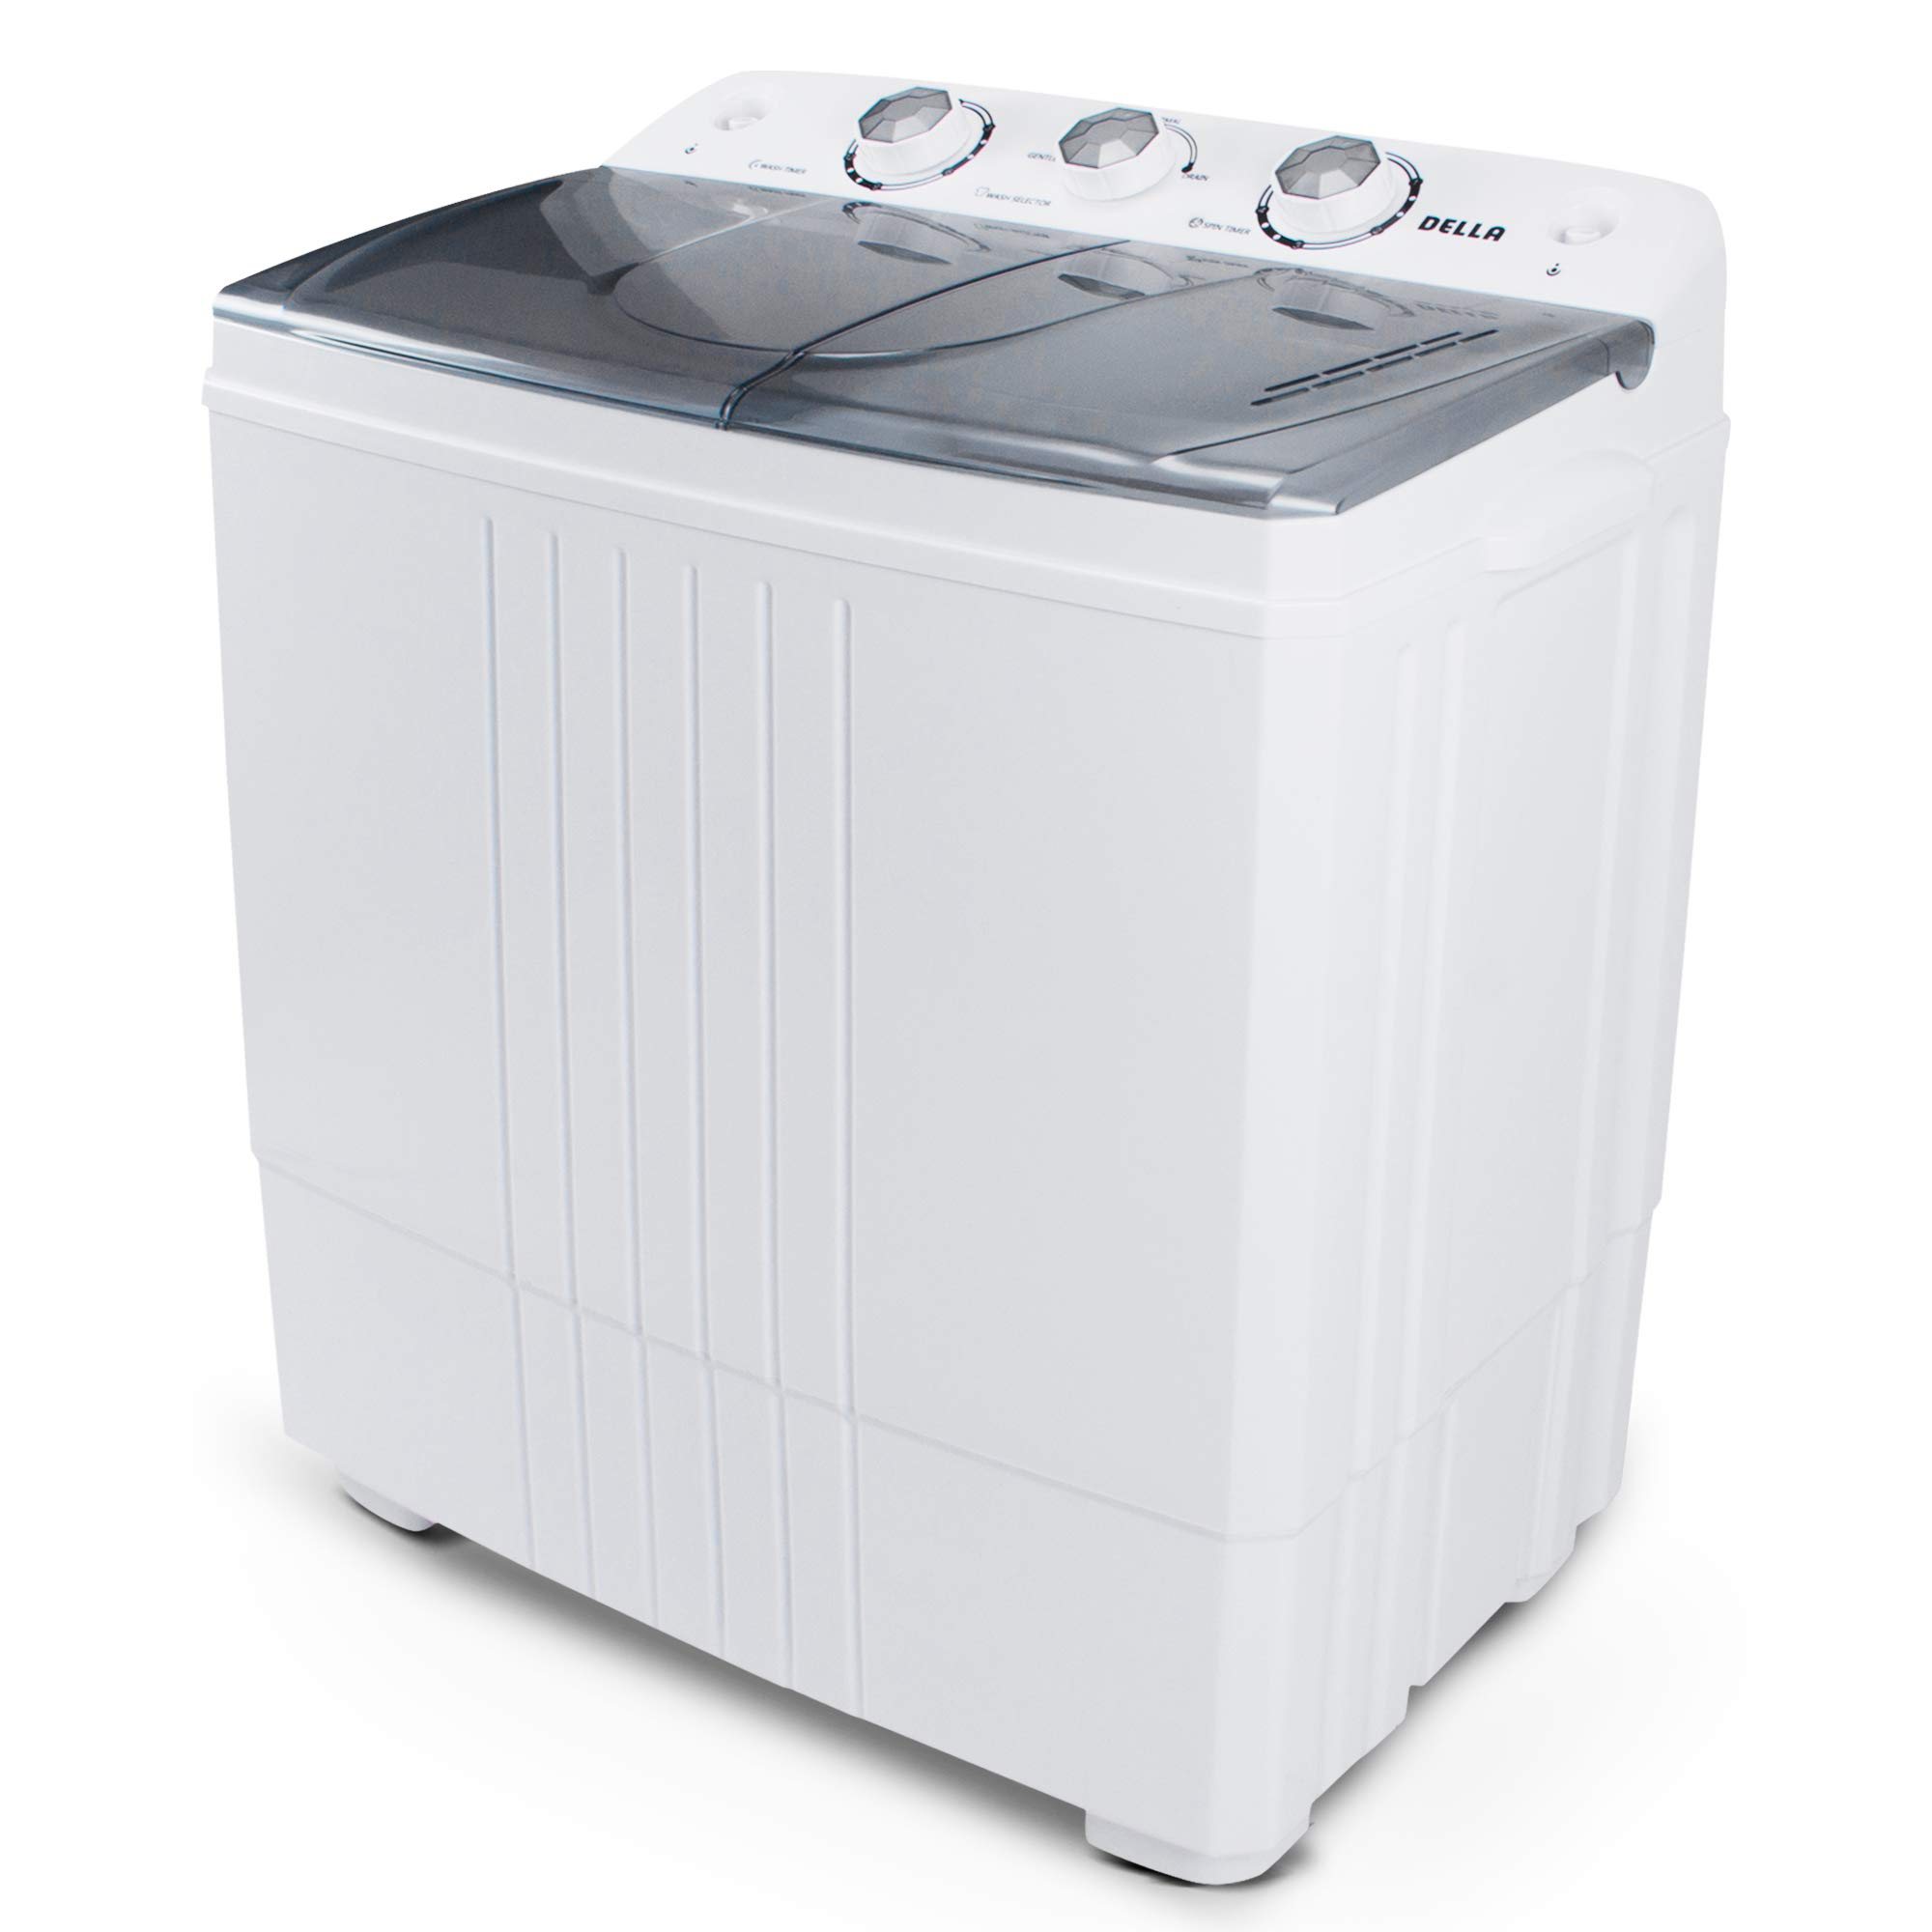 DELLA Small Compact Portable Washing Machine Washer 11lbs Capacity Top Load Laundry with Spin Dryer Combo, White by DELLA